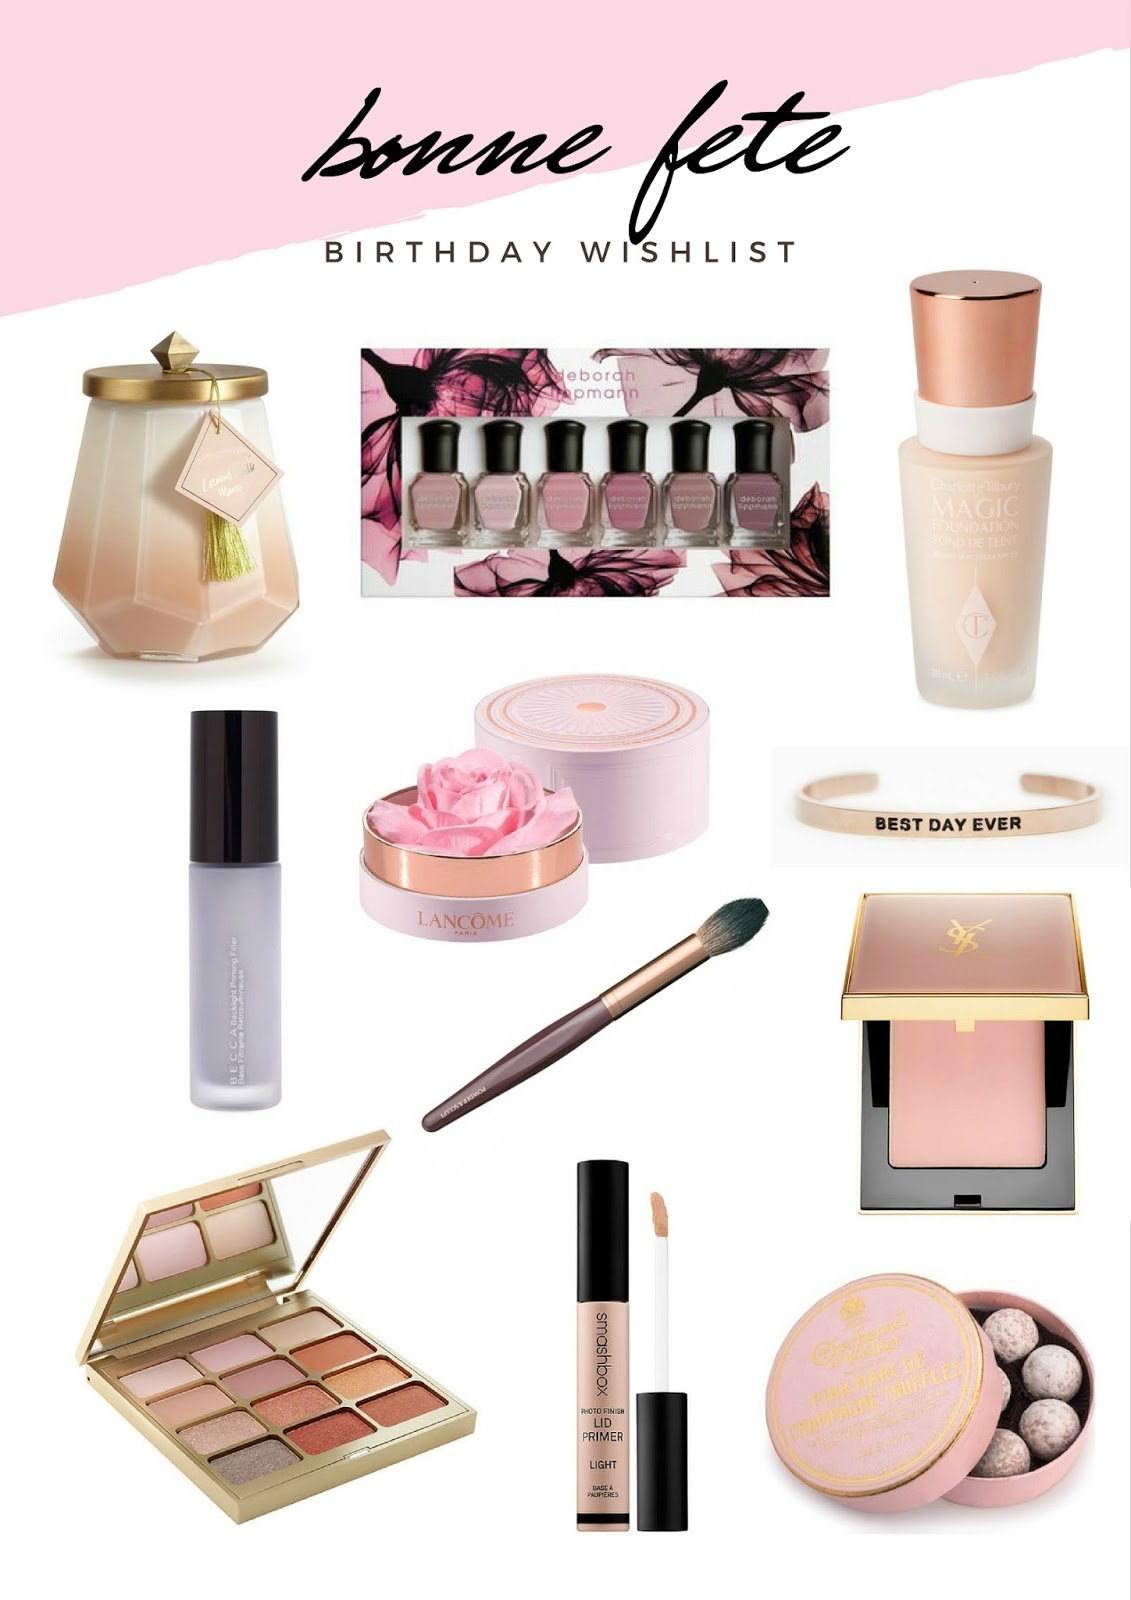 Bonne Fete | Wishes For A New Year & A New Chapter | My Birthday Wishlist | labellesirene.ca